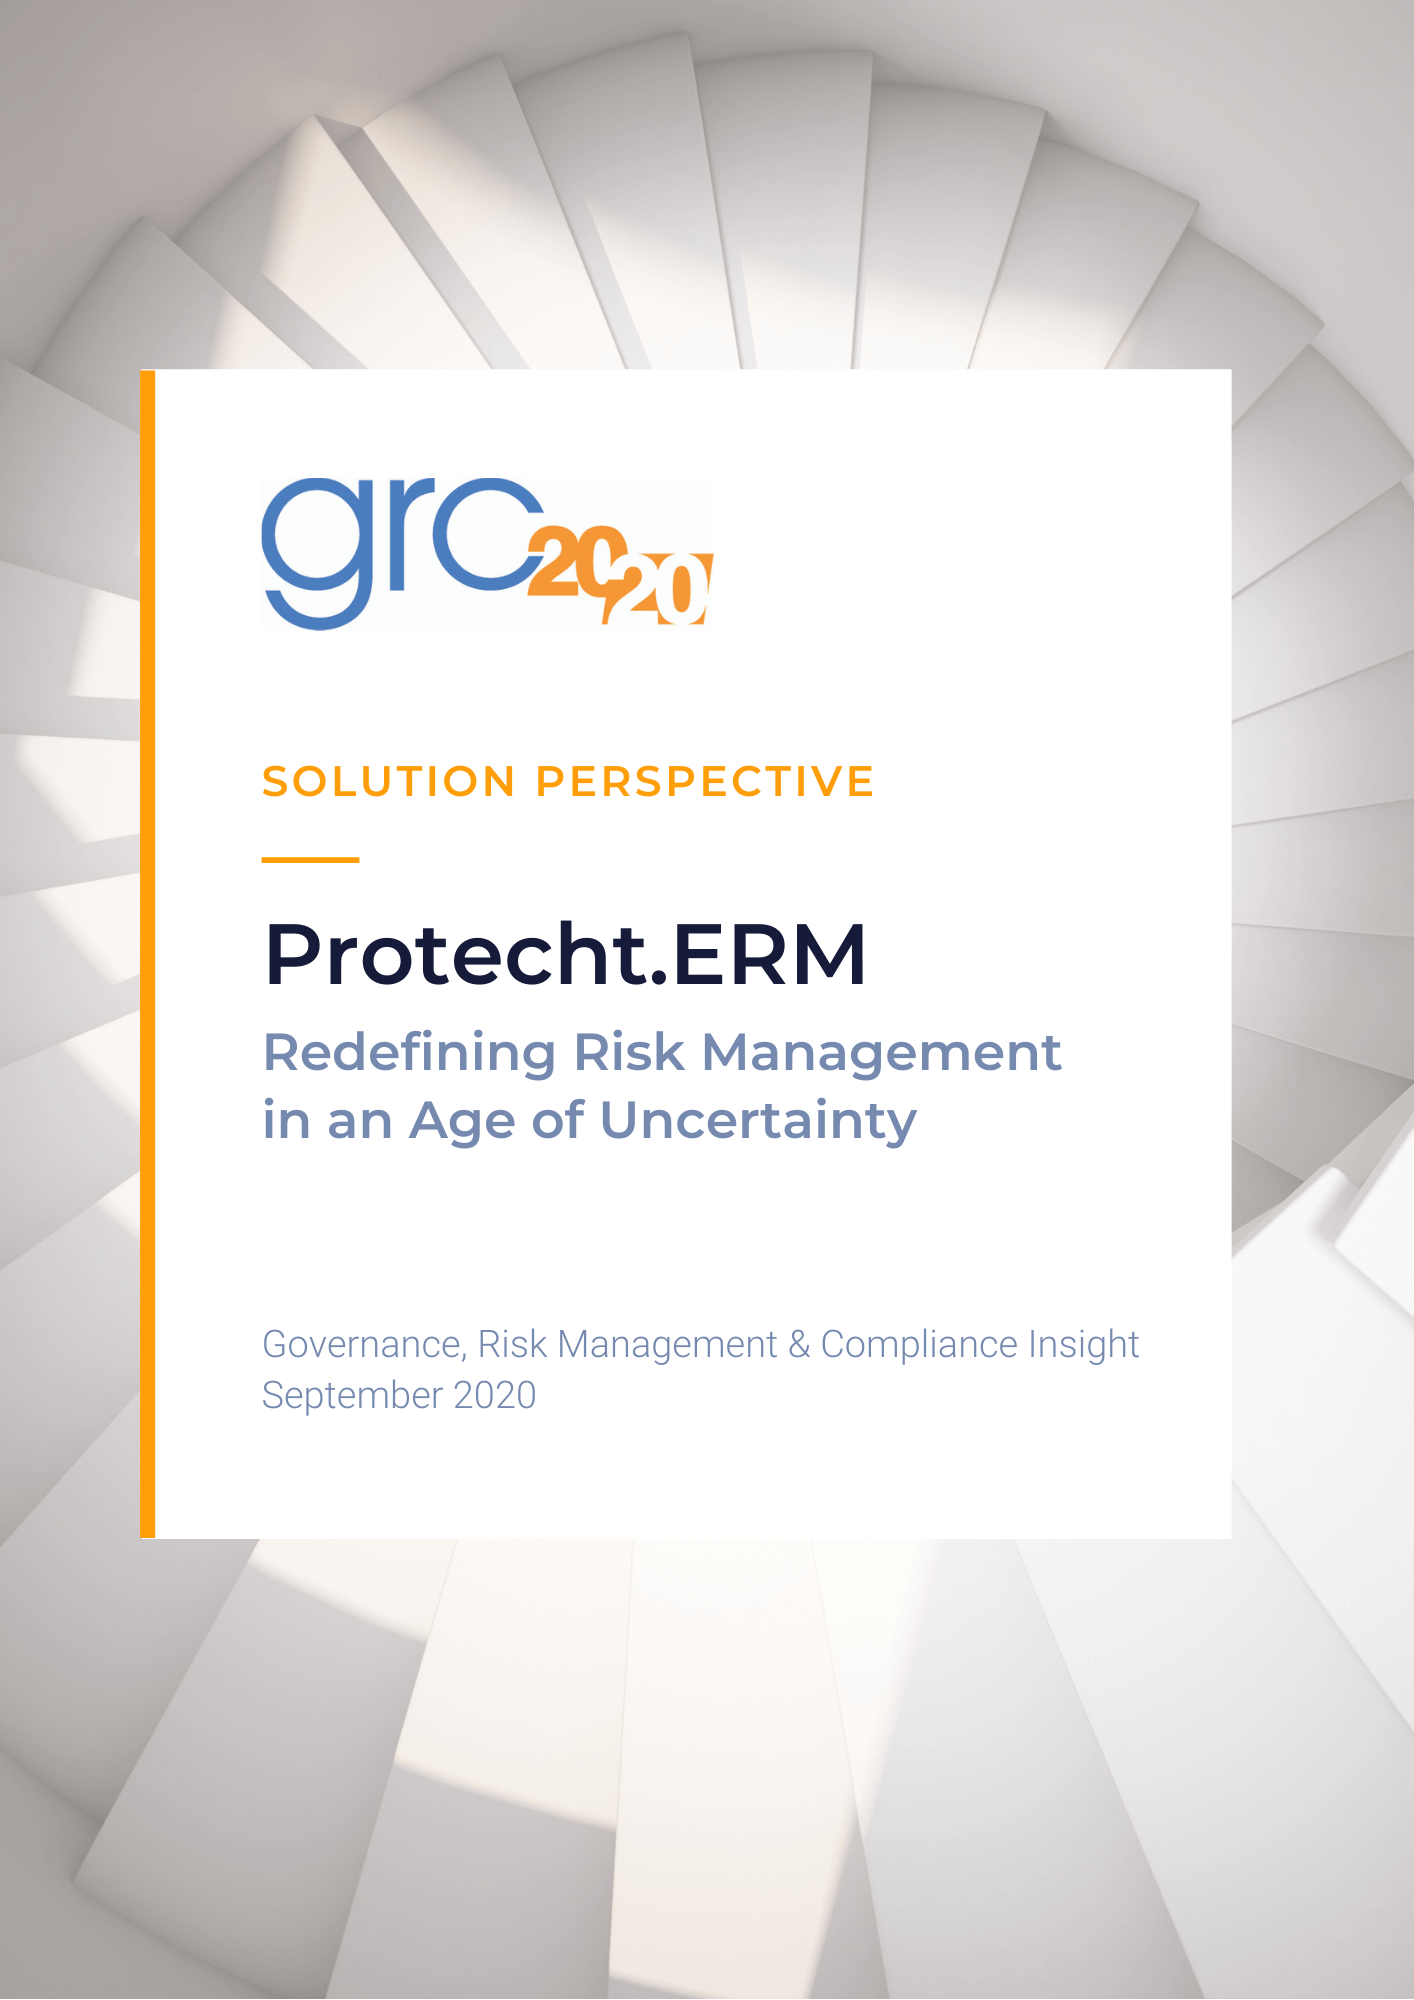 GRC 2020 Solution Perspective whitepaper cover